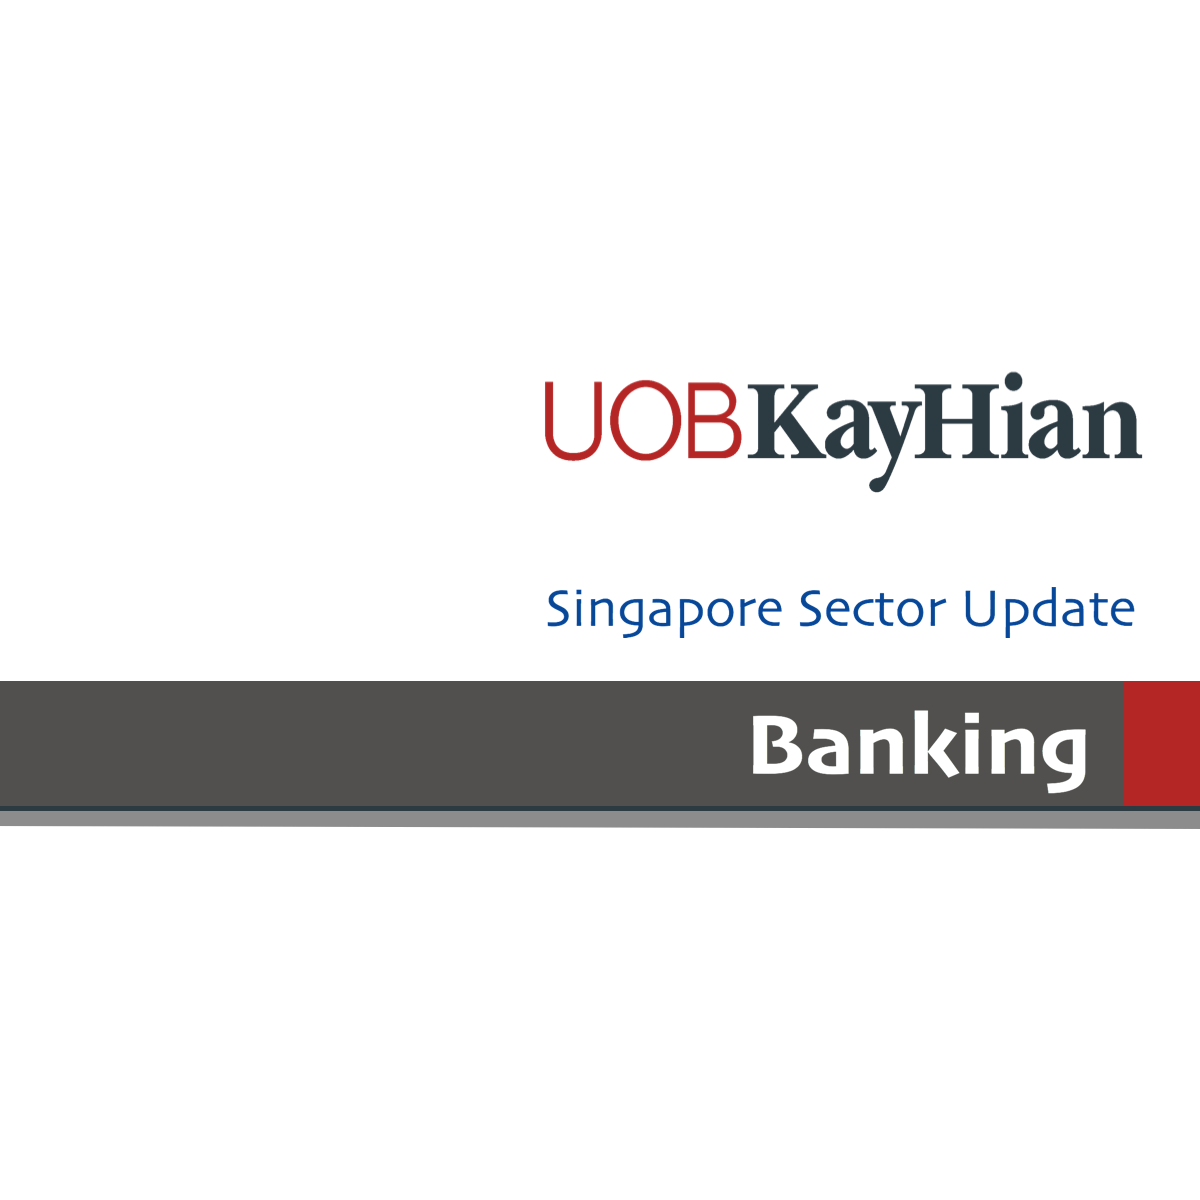 Banking – Singapore - UOB Kay Hian 2017-07-04: Unwinding QE – Implications For Banks